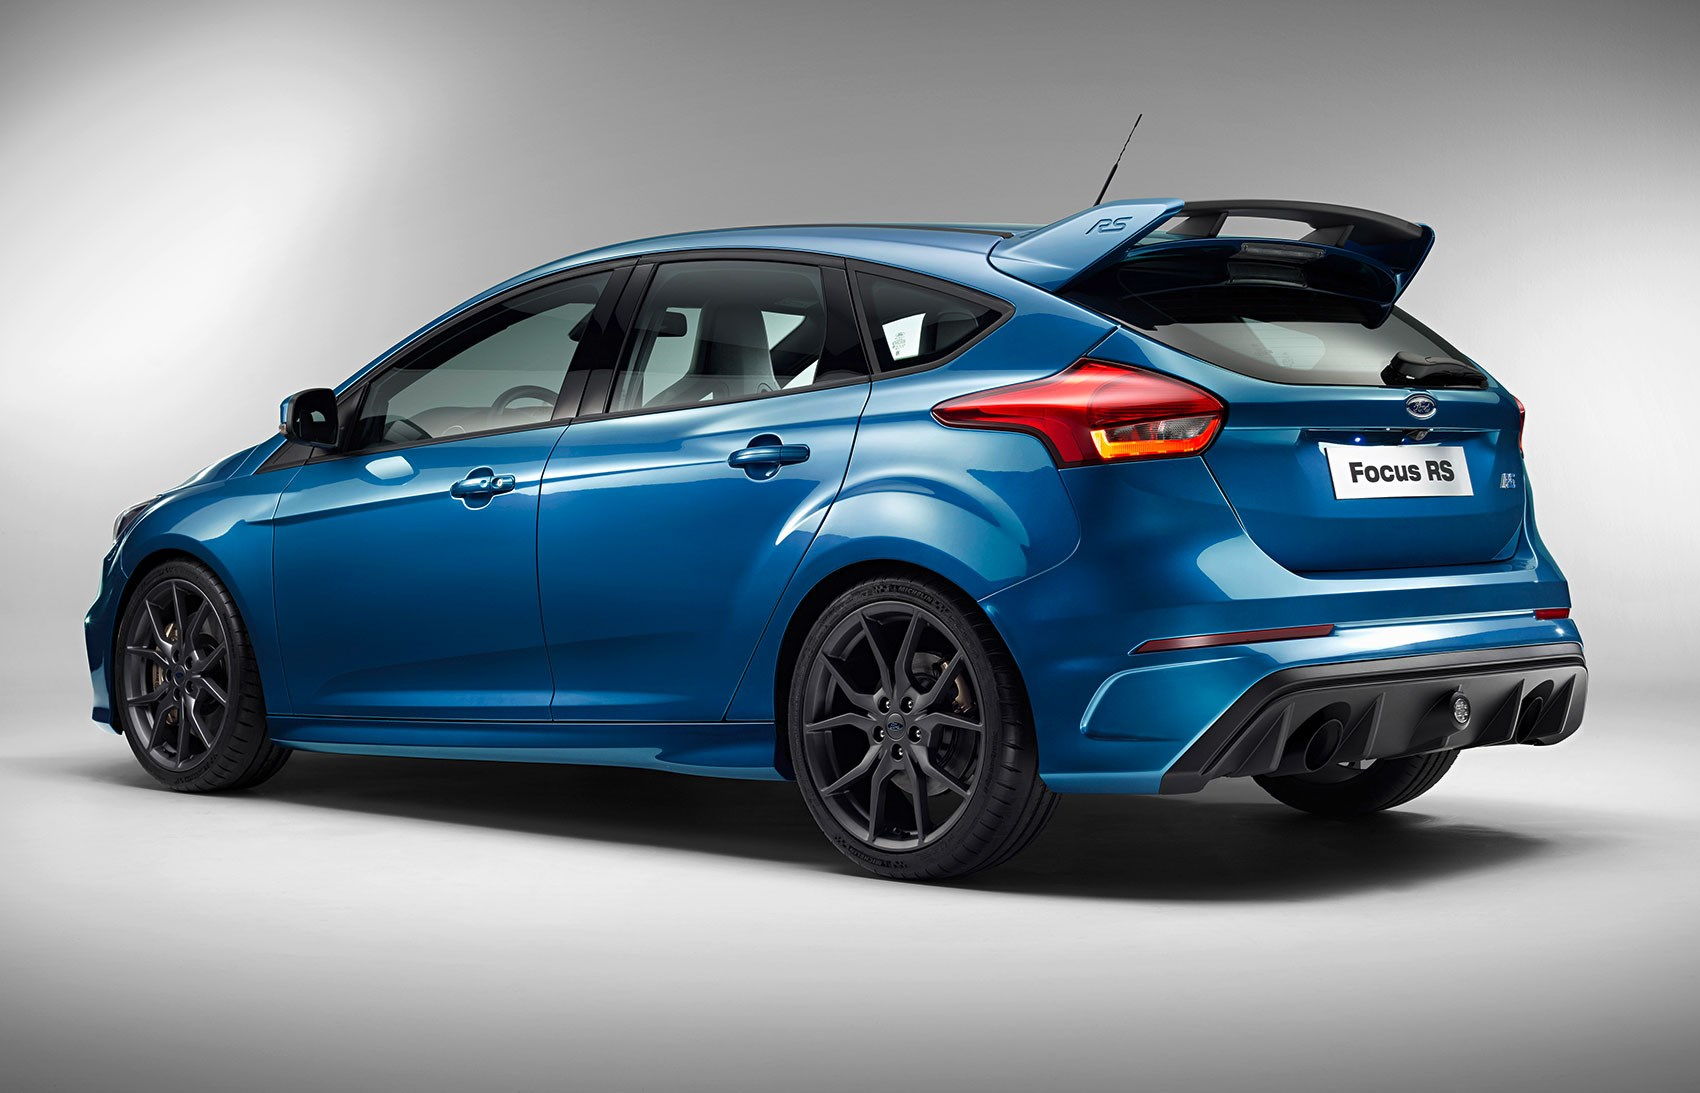 td hatchback and edmunds pricing rs features ford ratings reviews focus price